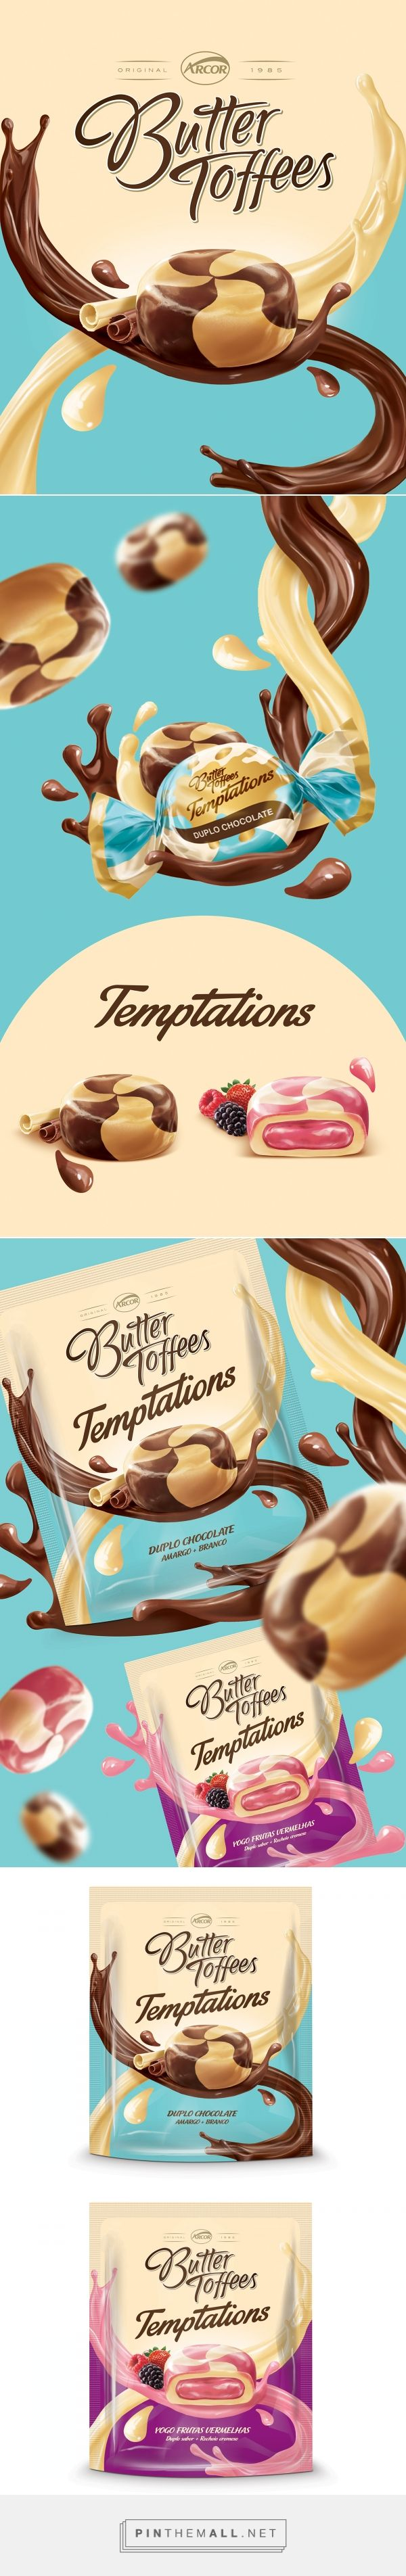 Arcor Butter Toffees on Behance